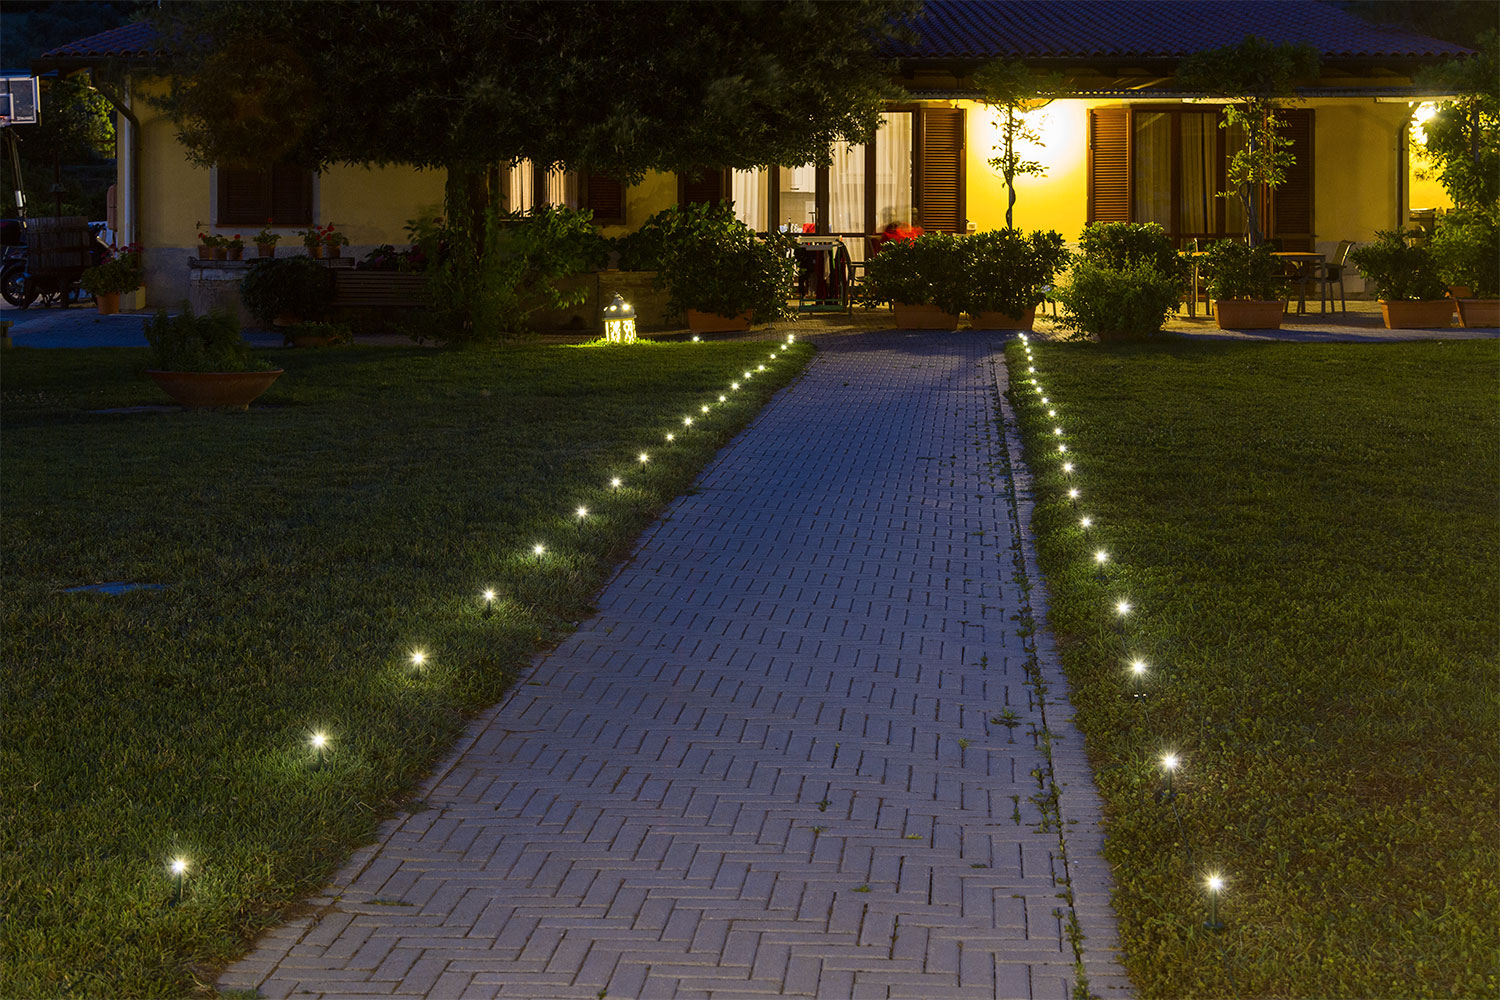 Ideas Jardín Cómo Decorar Un Sendero Con Luces Decorativas Luminal Park